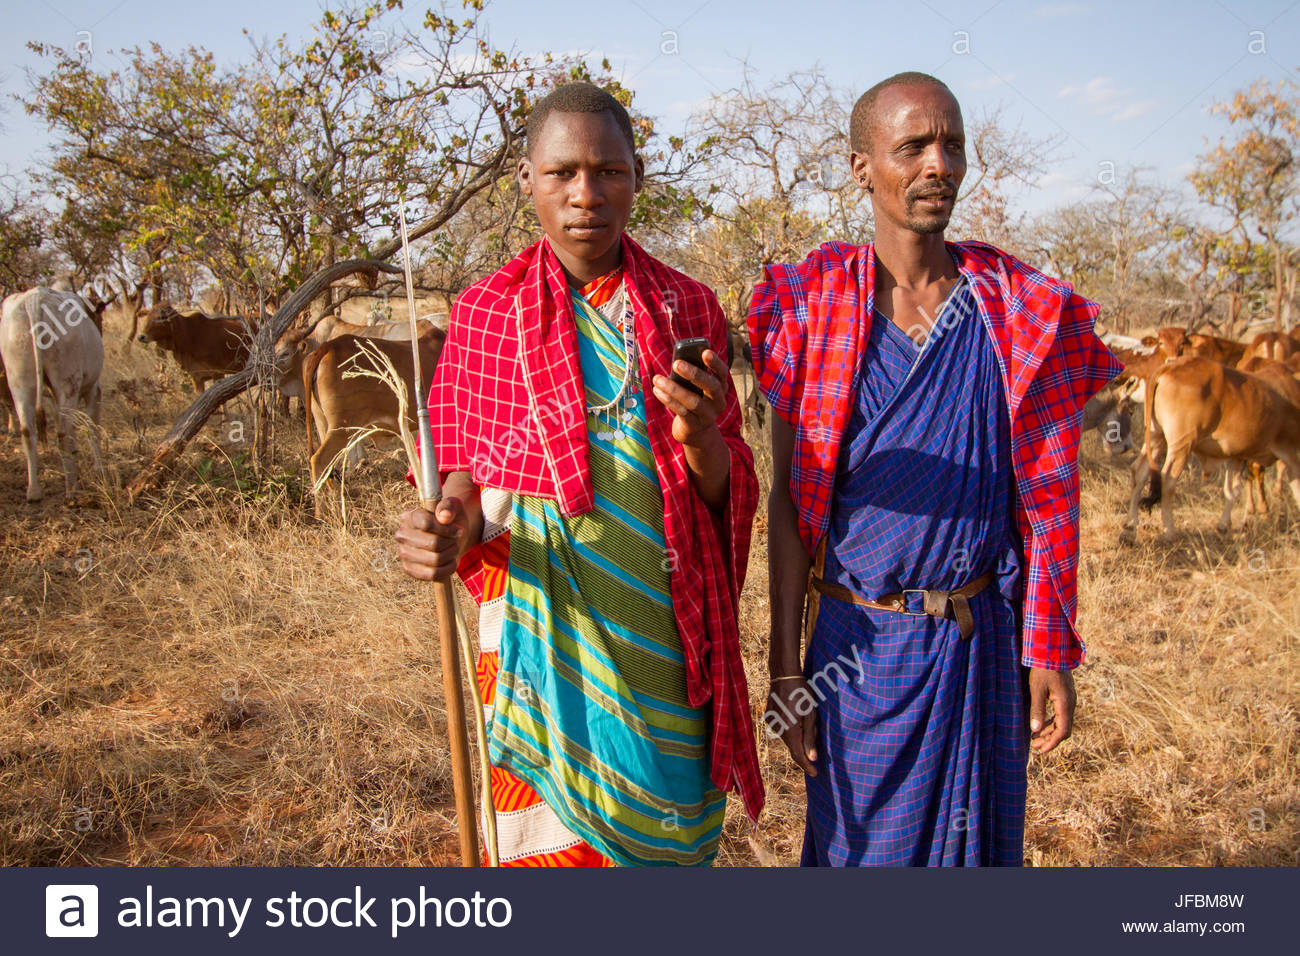 As a semi-nomadic people, the Massai use cell phones to keep in touch with their families and other Massai in the - Stock Image